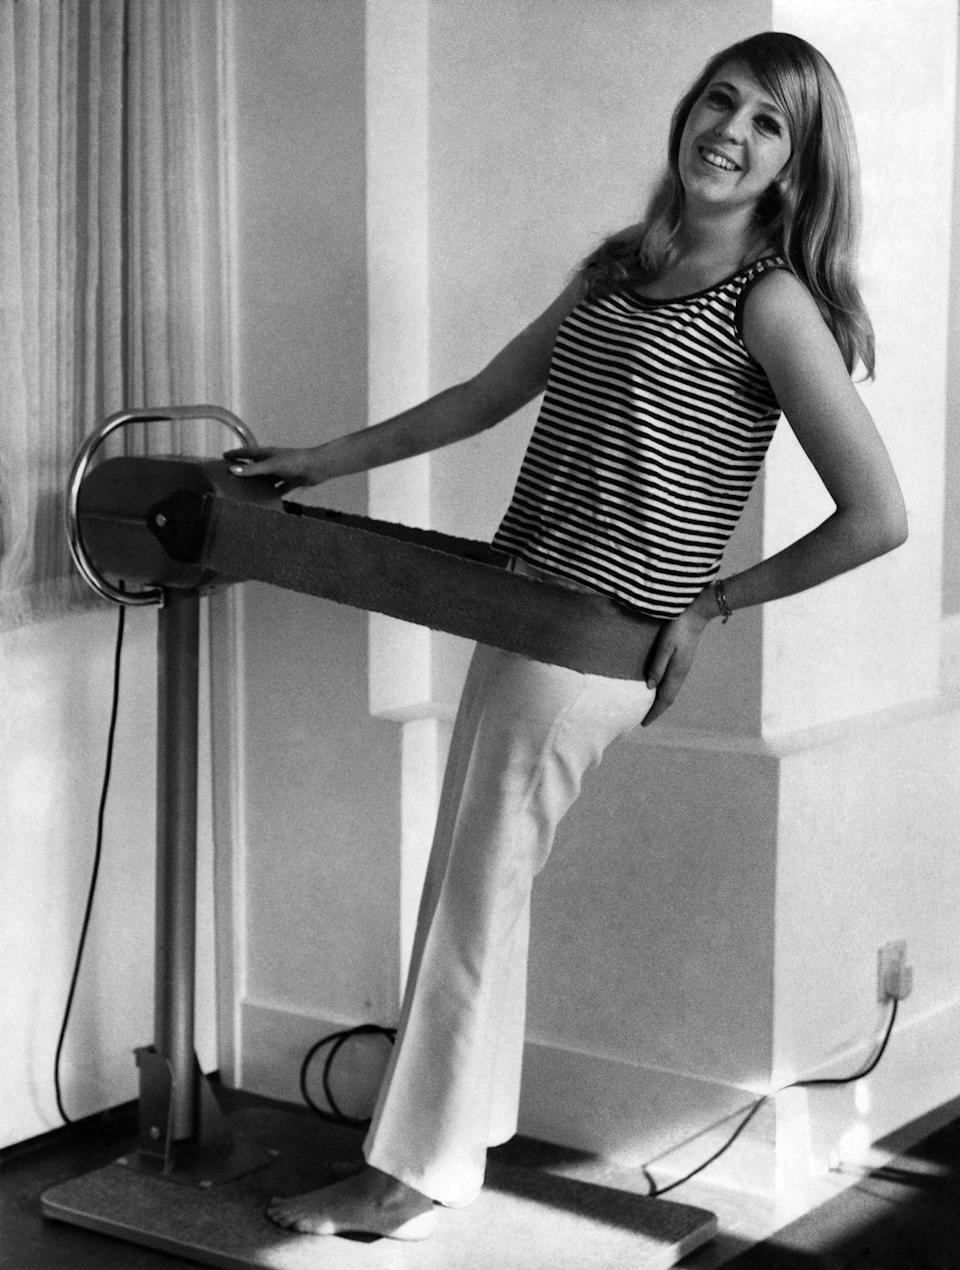 "<p>Not every aspect of the fitness world was evolving. The vibrating machines of the early 1900s came back as a trend in the 1960s. This woman uses a <a href=""https://wellness360magazine.com/fitness-trends/"" rel=""nofollow noopener"" target=""_blank"" data-ylk=""slk:vibrating belt"" class=""link rapid-noclick-resp"">vibrating belt</a>, which was believed to vibrate away unwanted fat.<br></p>"